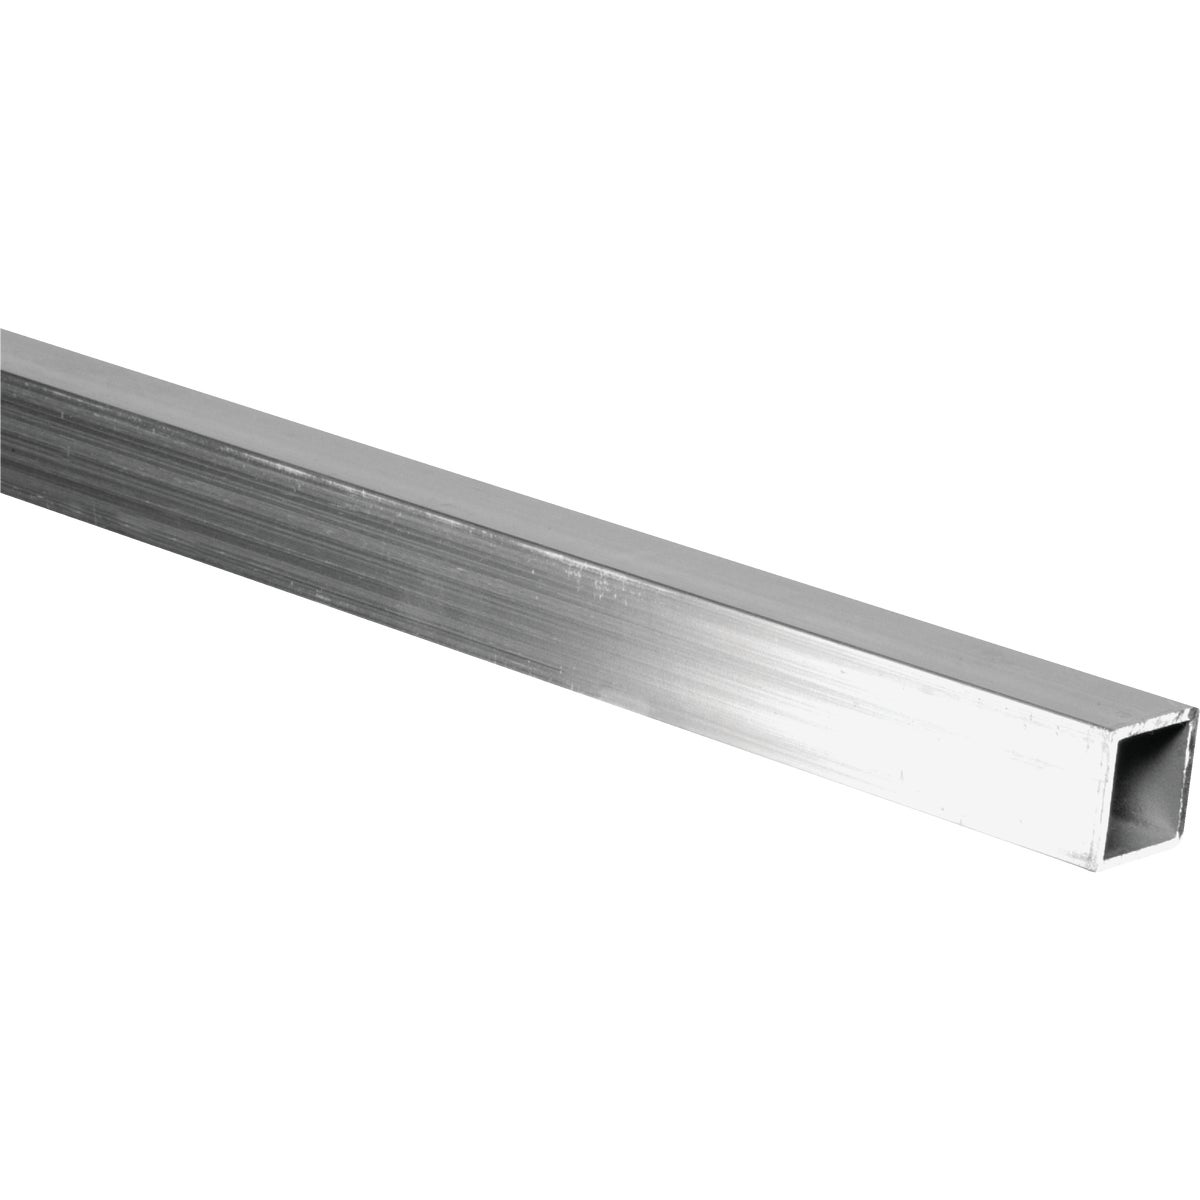 1/6' ALUM SQUARE TUBE - N247627 by National Mfg Co